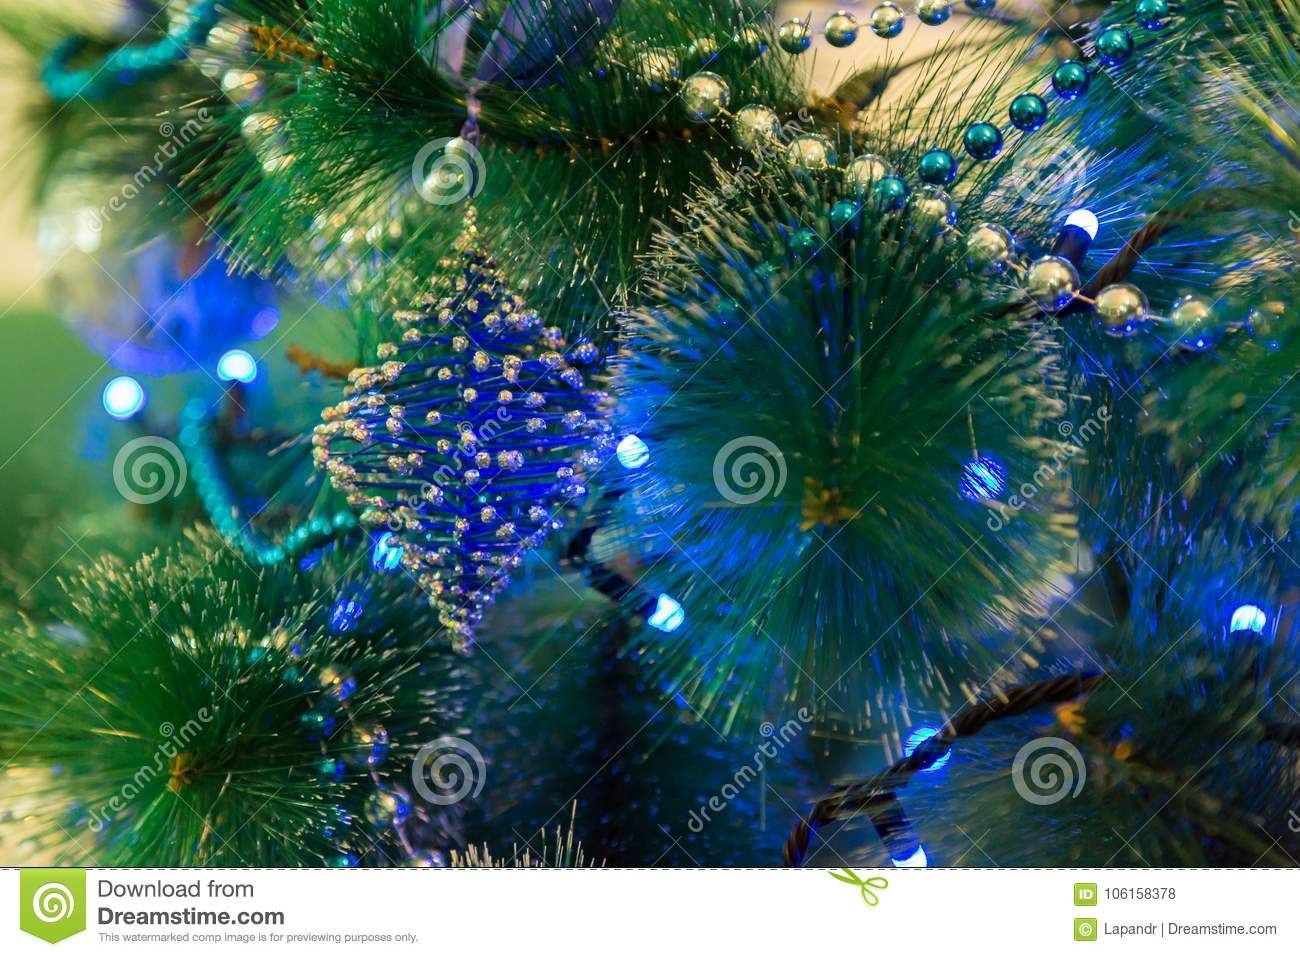 download decorated christmas tree with blue lights white christmas ball and garland stock photo - How To Decorate A White Christmas Tree In Blue